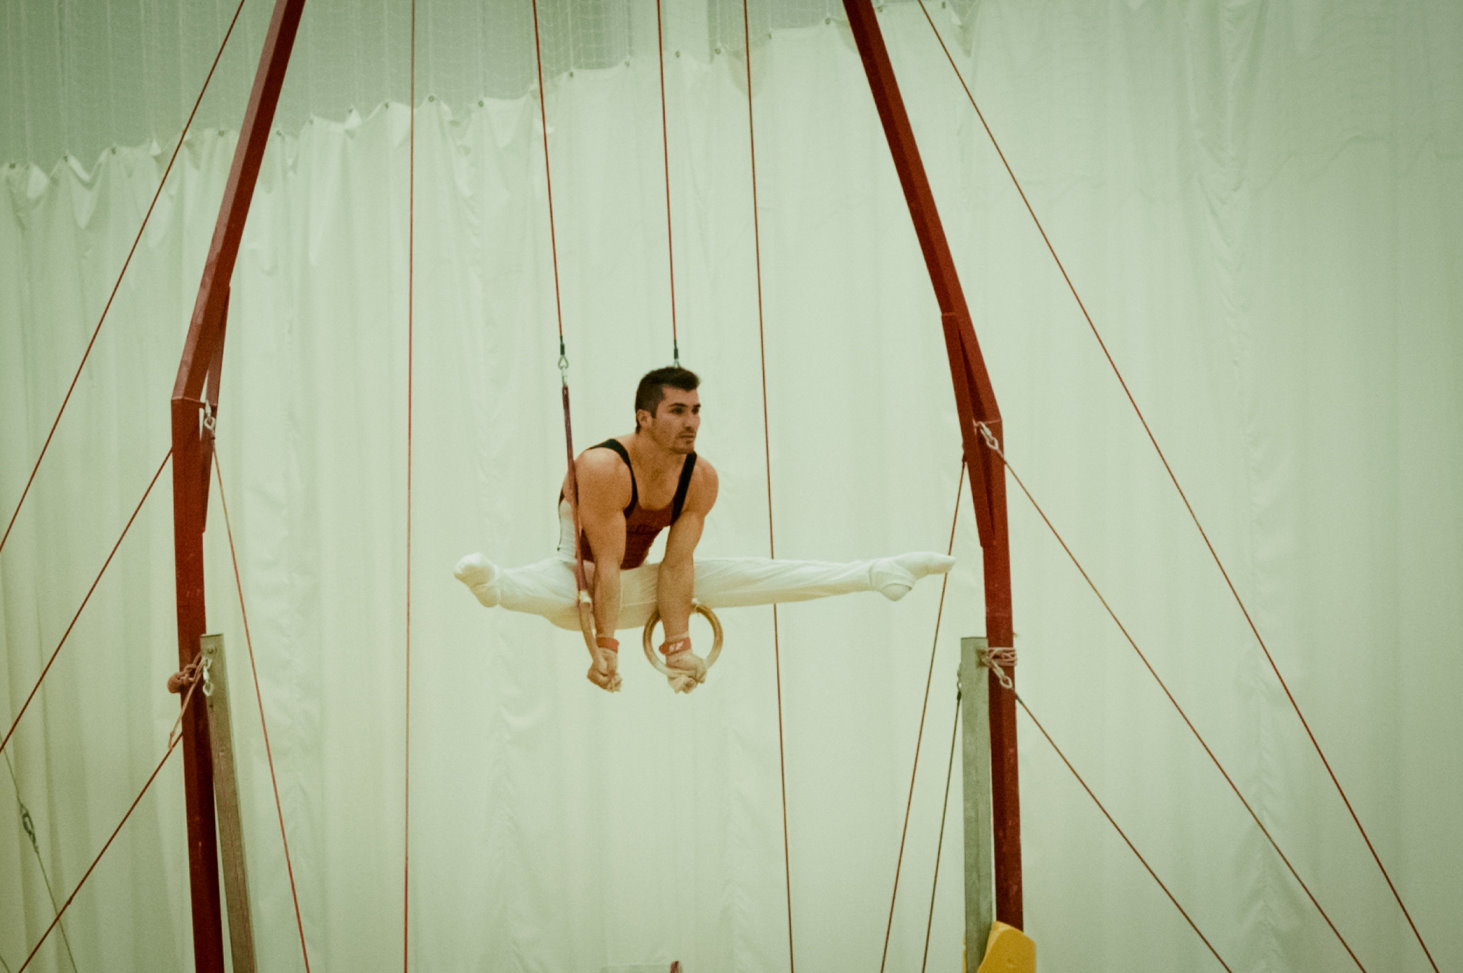 Stefan at the Europa Gymnastics Centre